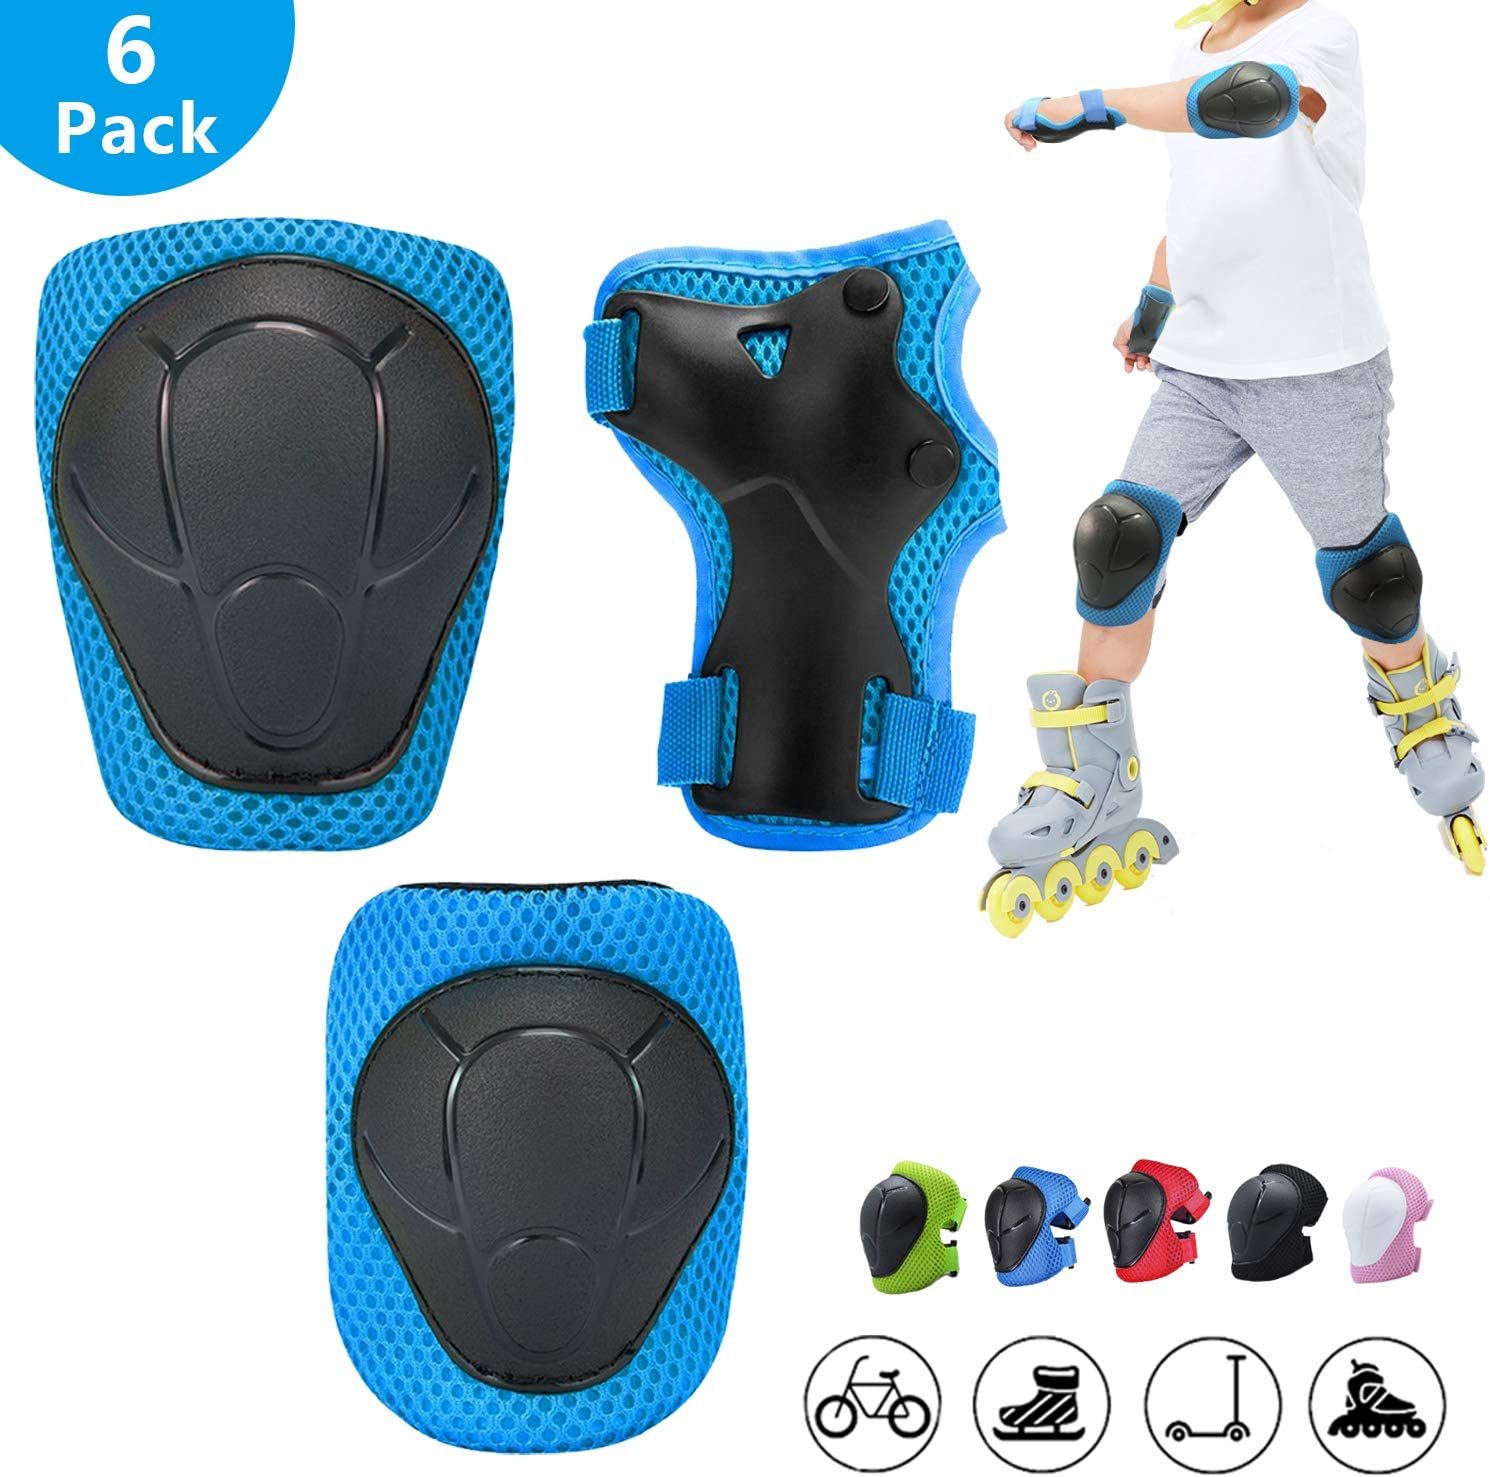 Knee Pads for Kids,Kids Protective Gear Set with Child Kids Knee and Elbow Pads & Wrist Guards 3 in 1 for Biking Skateboard Scooter Rollerblading Skating Cycling[Upgraded Version 3.0]